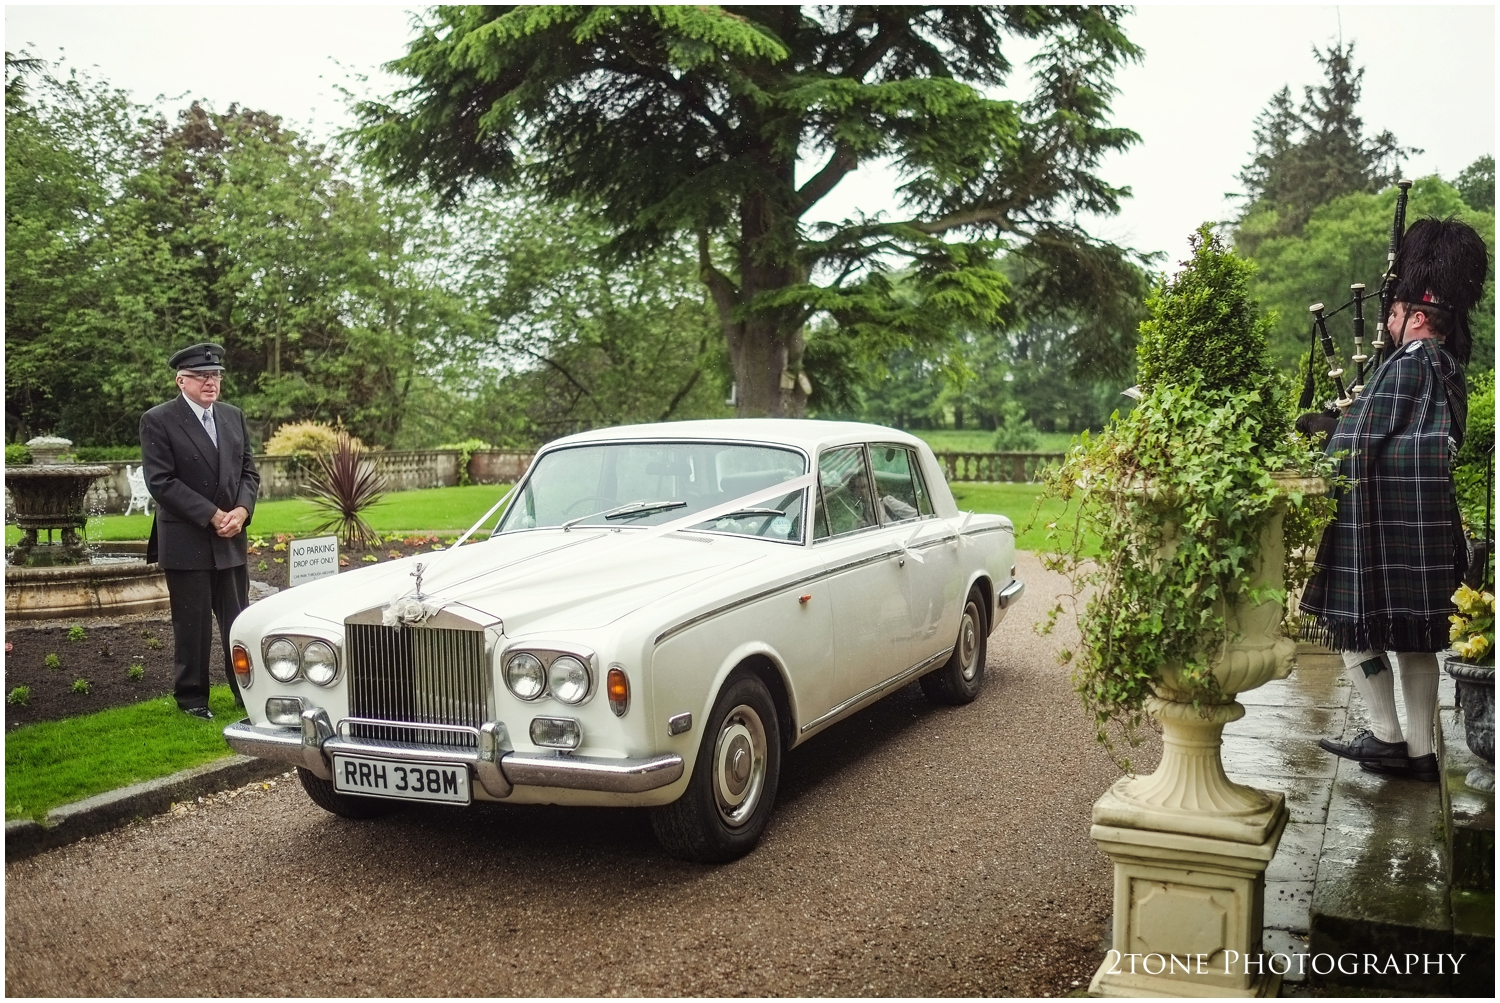 A traditional bag piper piped the wedding car and our couple into Doxford Hall to begin their wedding reception.